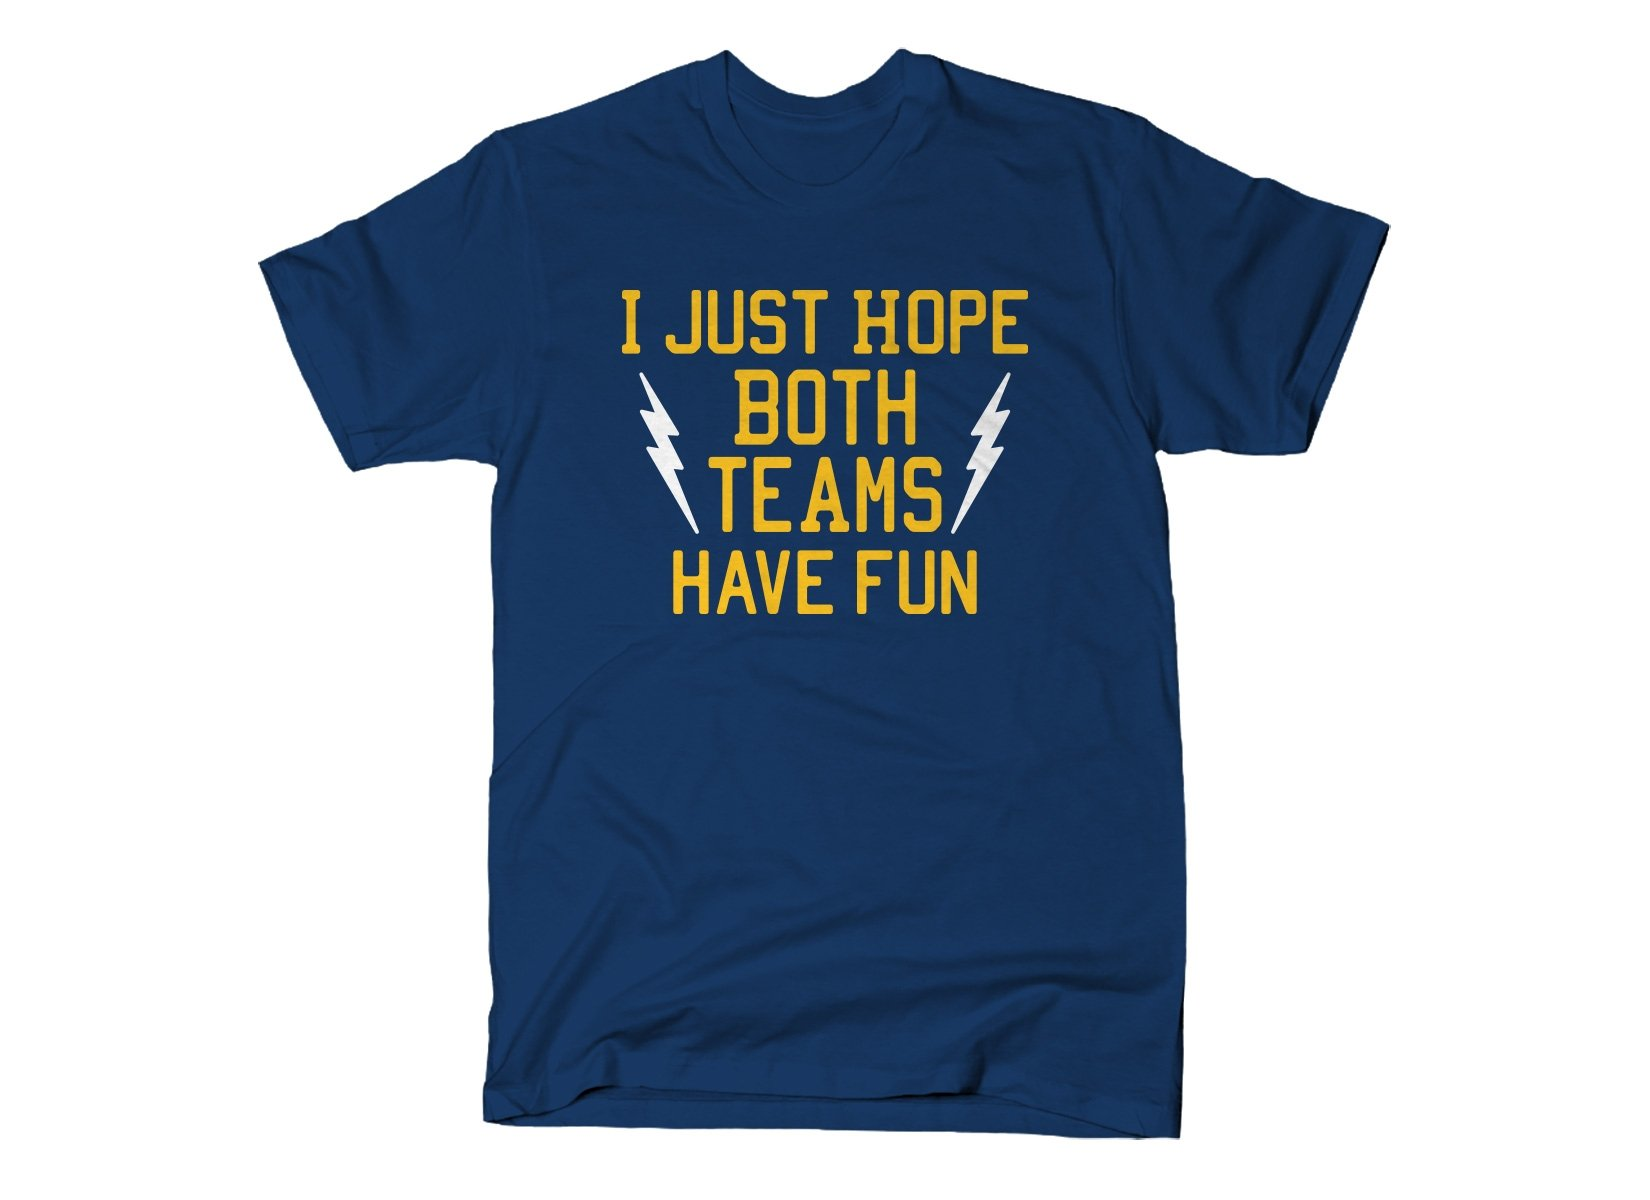 I Just Hope Both Teams Have Fun on Mens T-Shirt